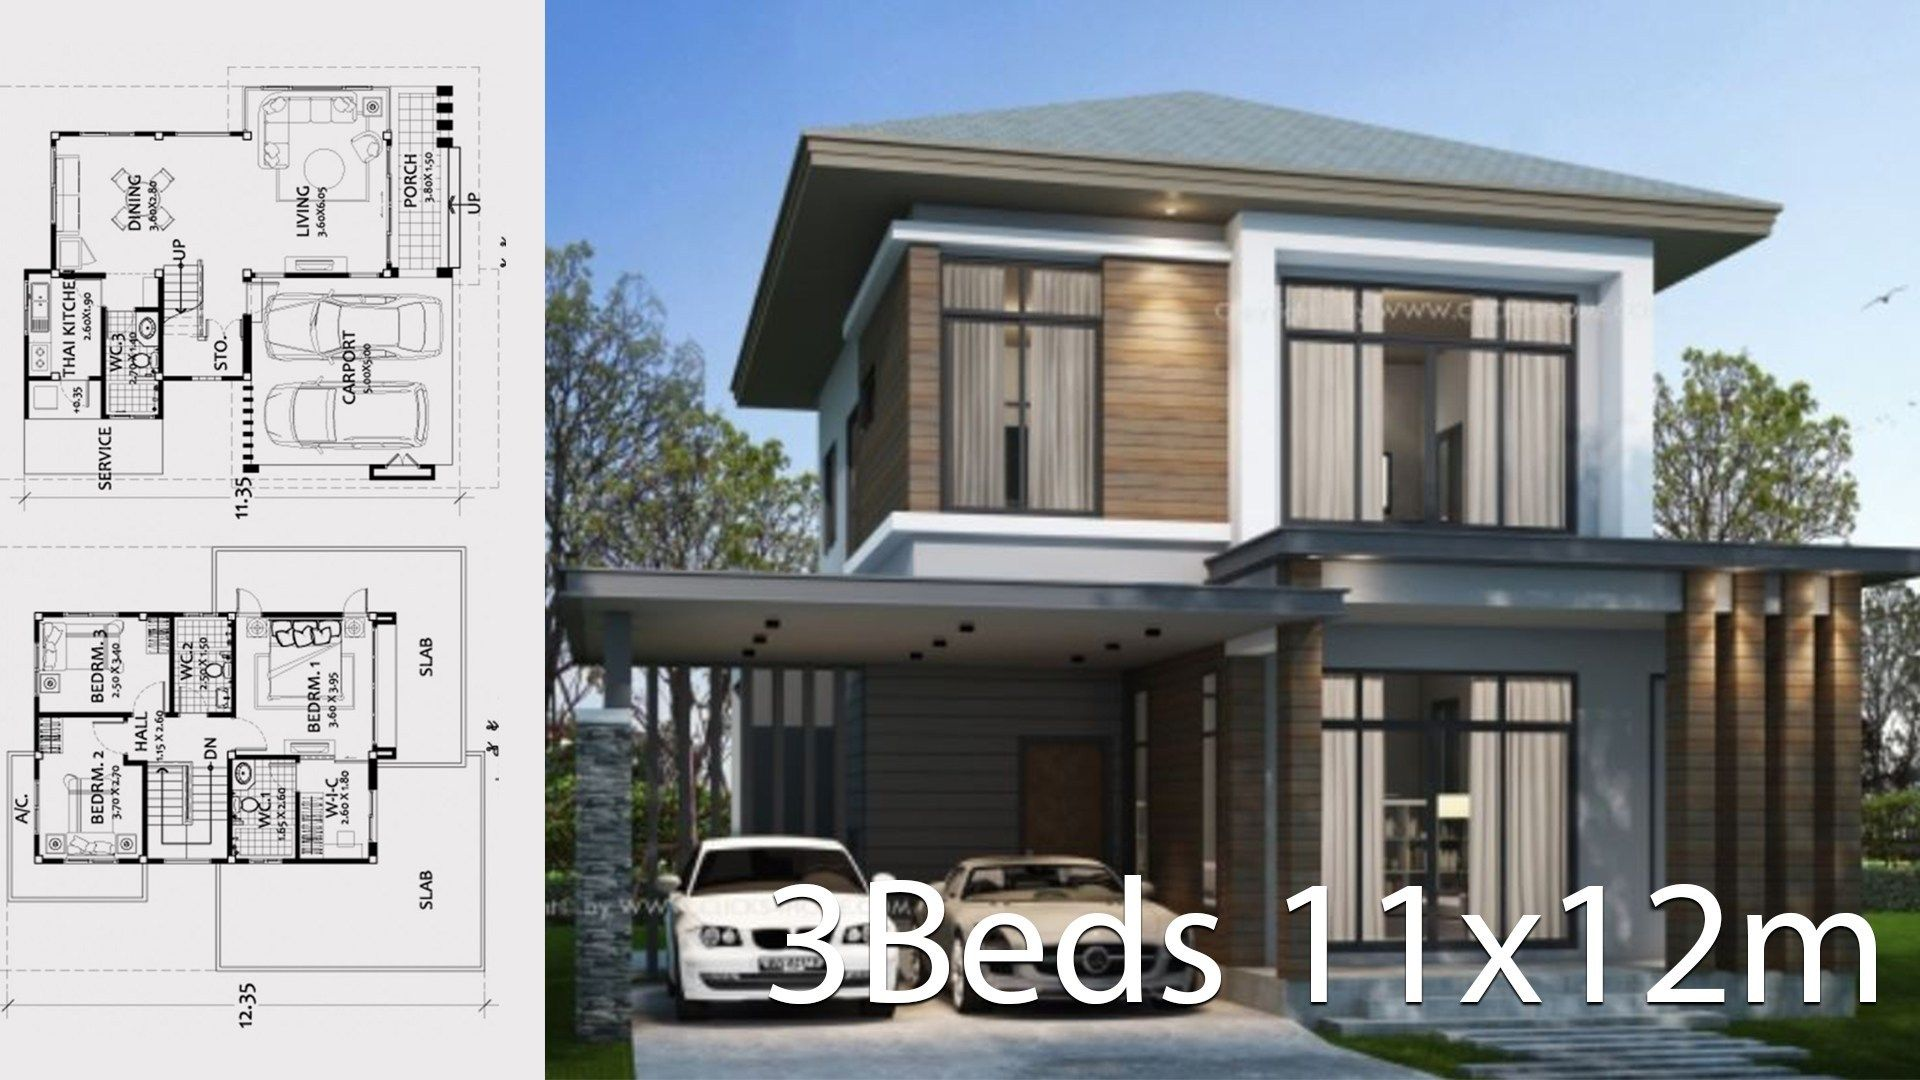 Home Design Plan 11x12m With 3 Bedrooms Home Design With Plan House Design Home Design Plan My House Plans